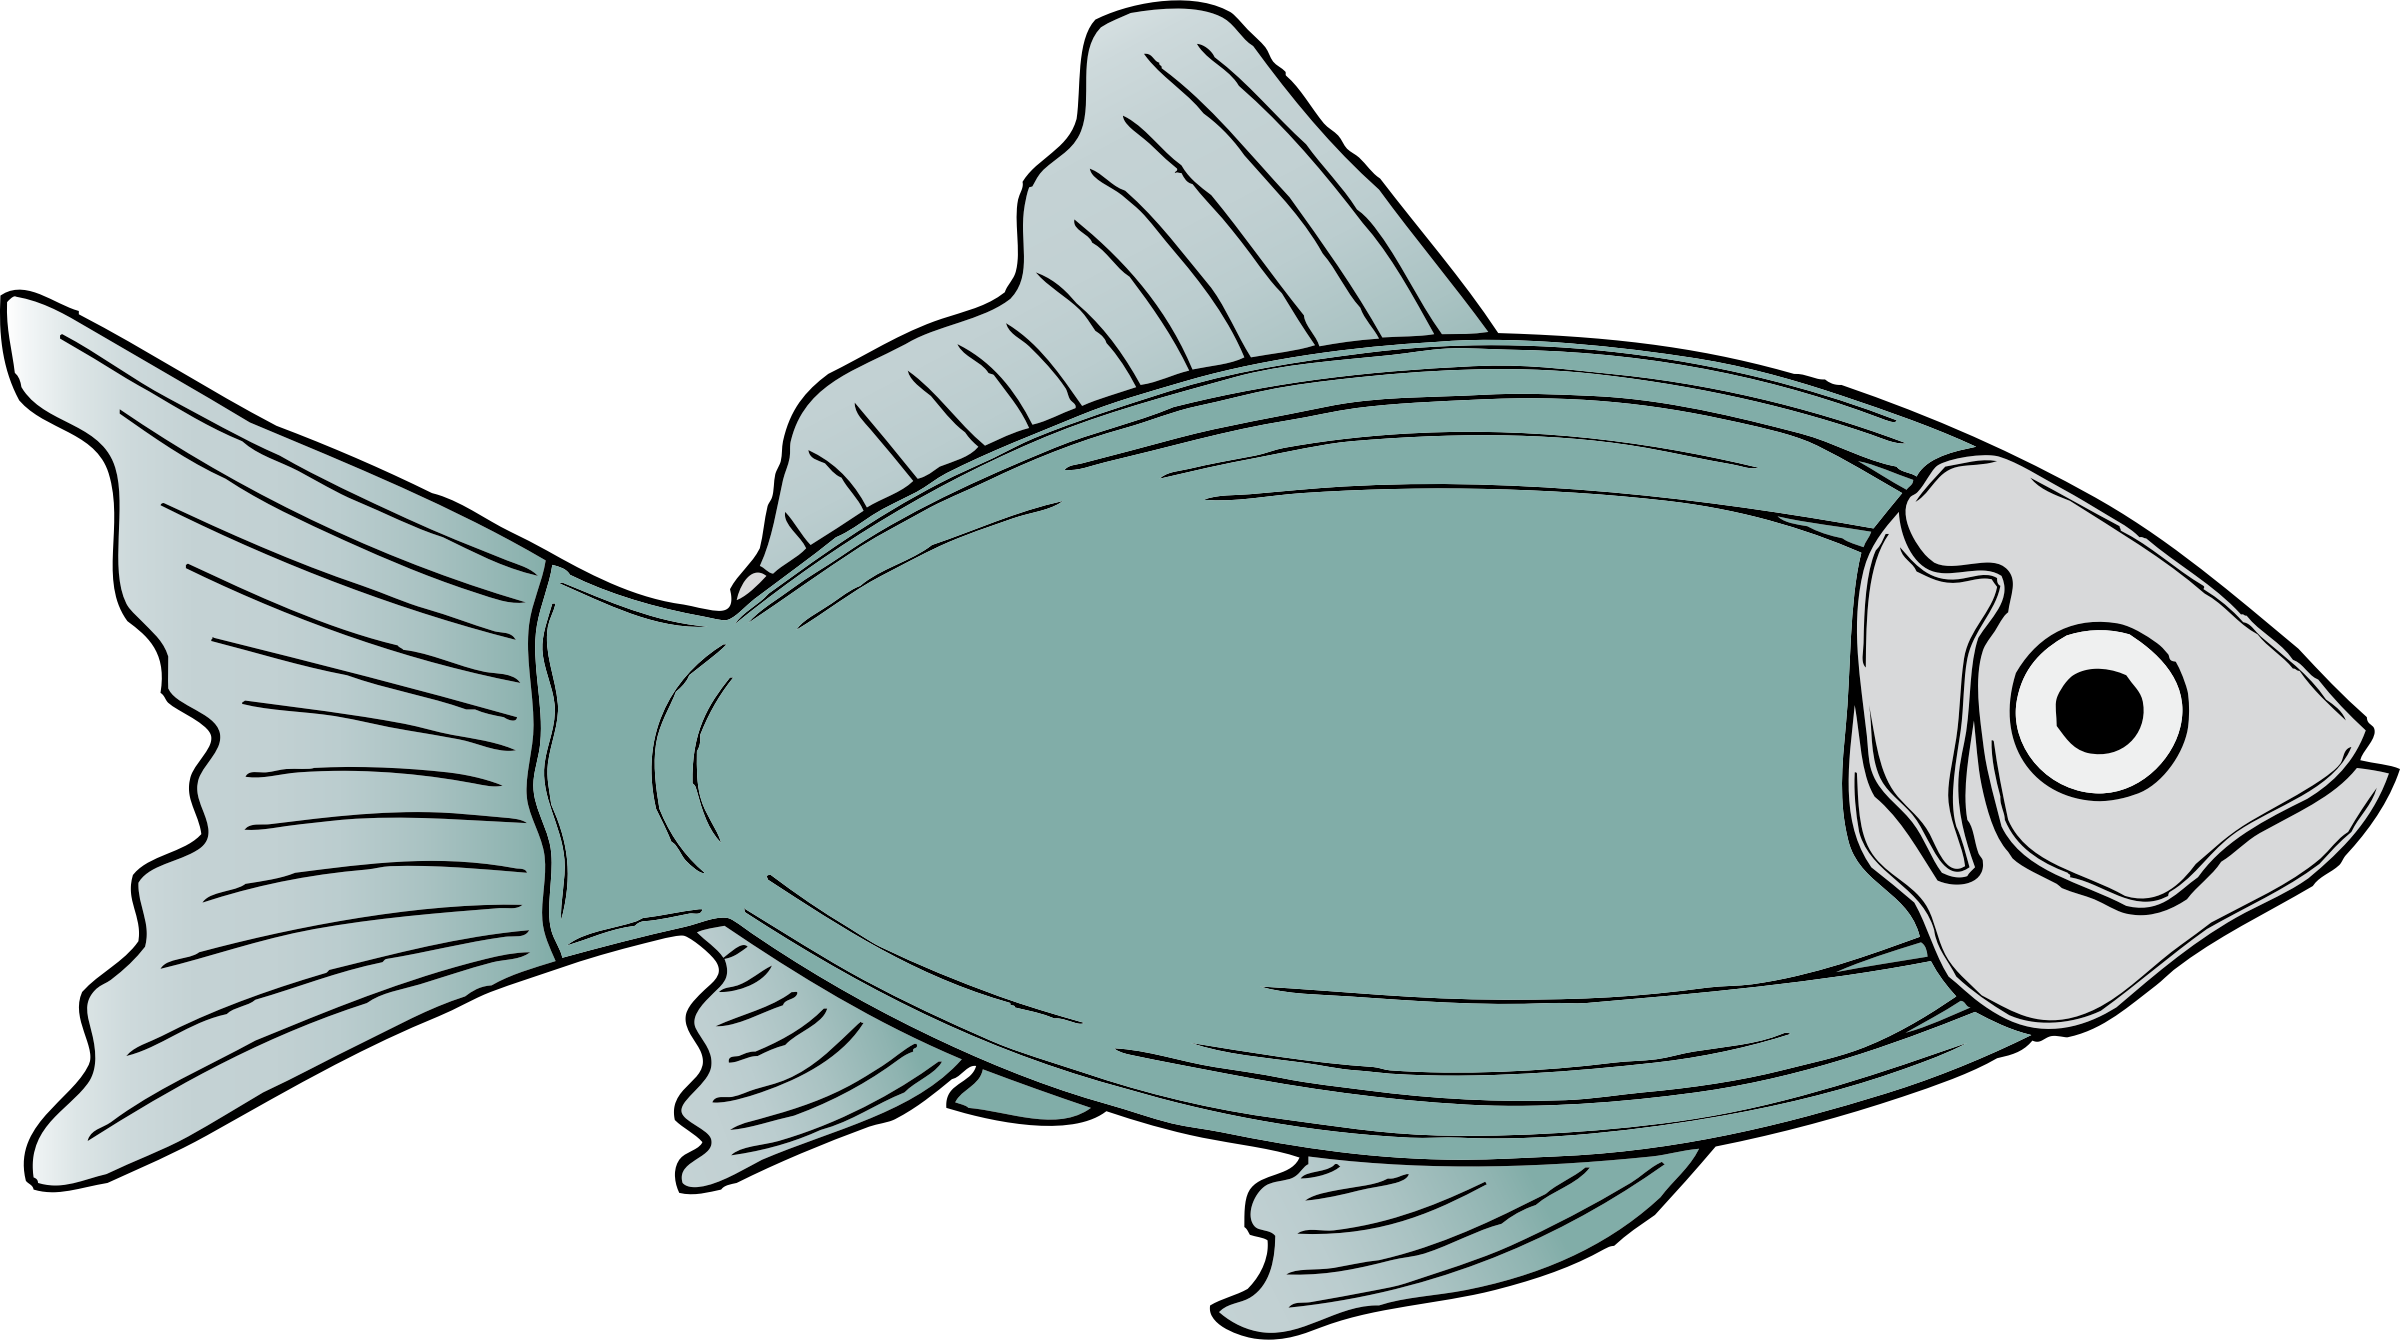 Fish reading clipart image freeuse library Clipart - generic fish image freeuse library